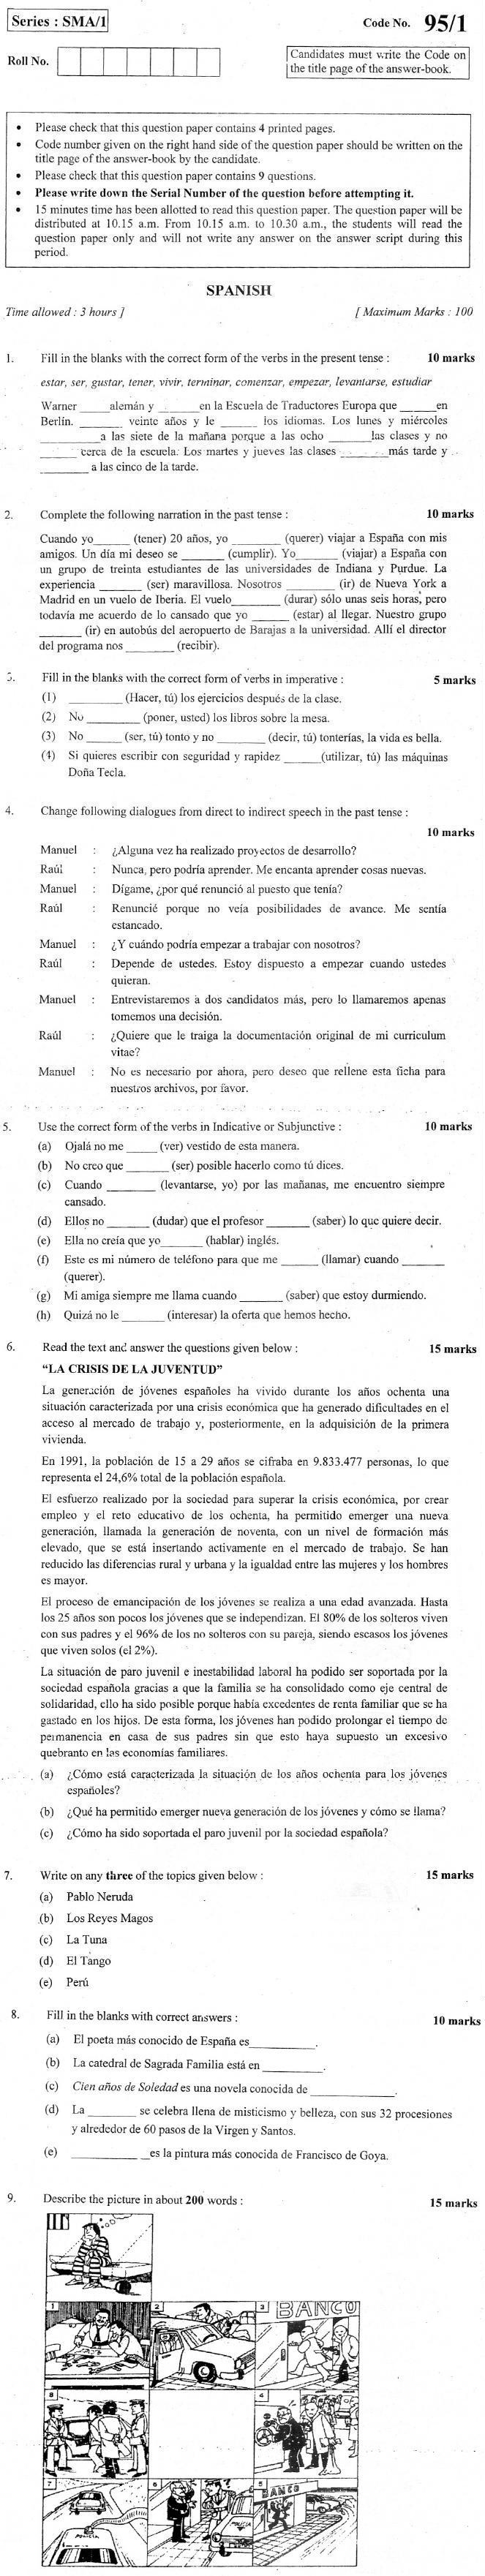 CBSE Class XII Previous Year Question Paper 2012 Spanish